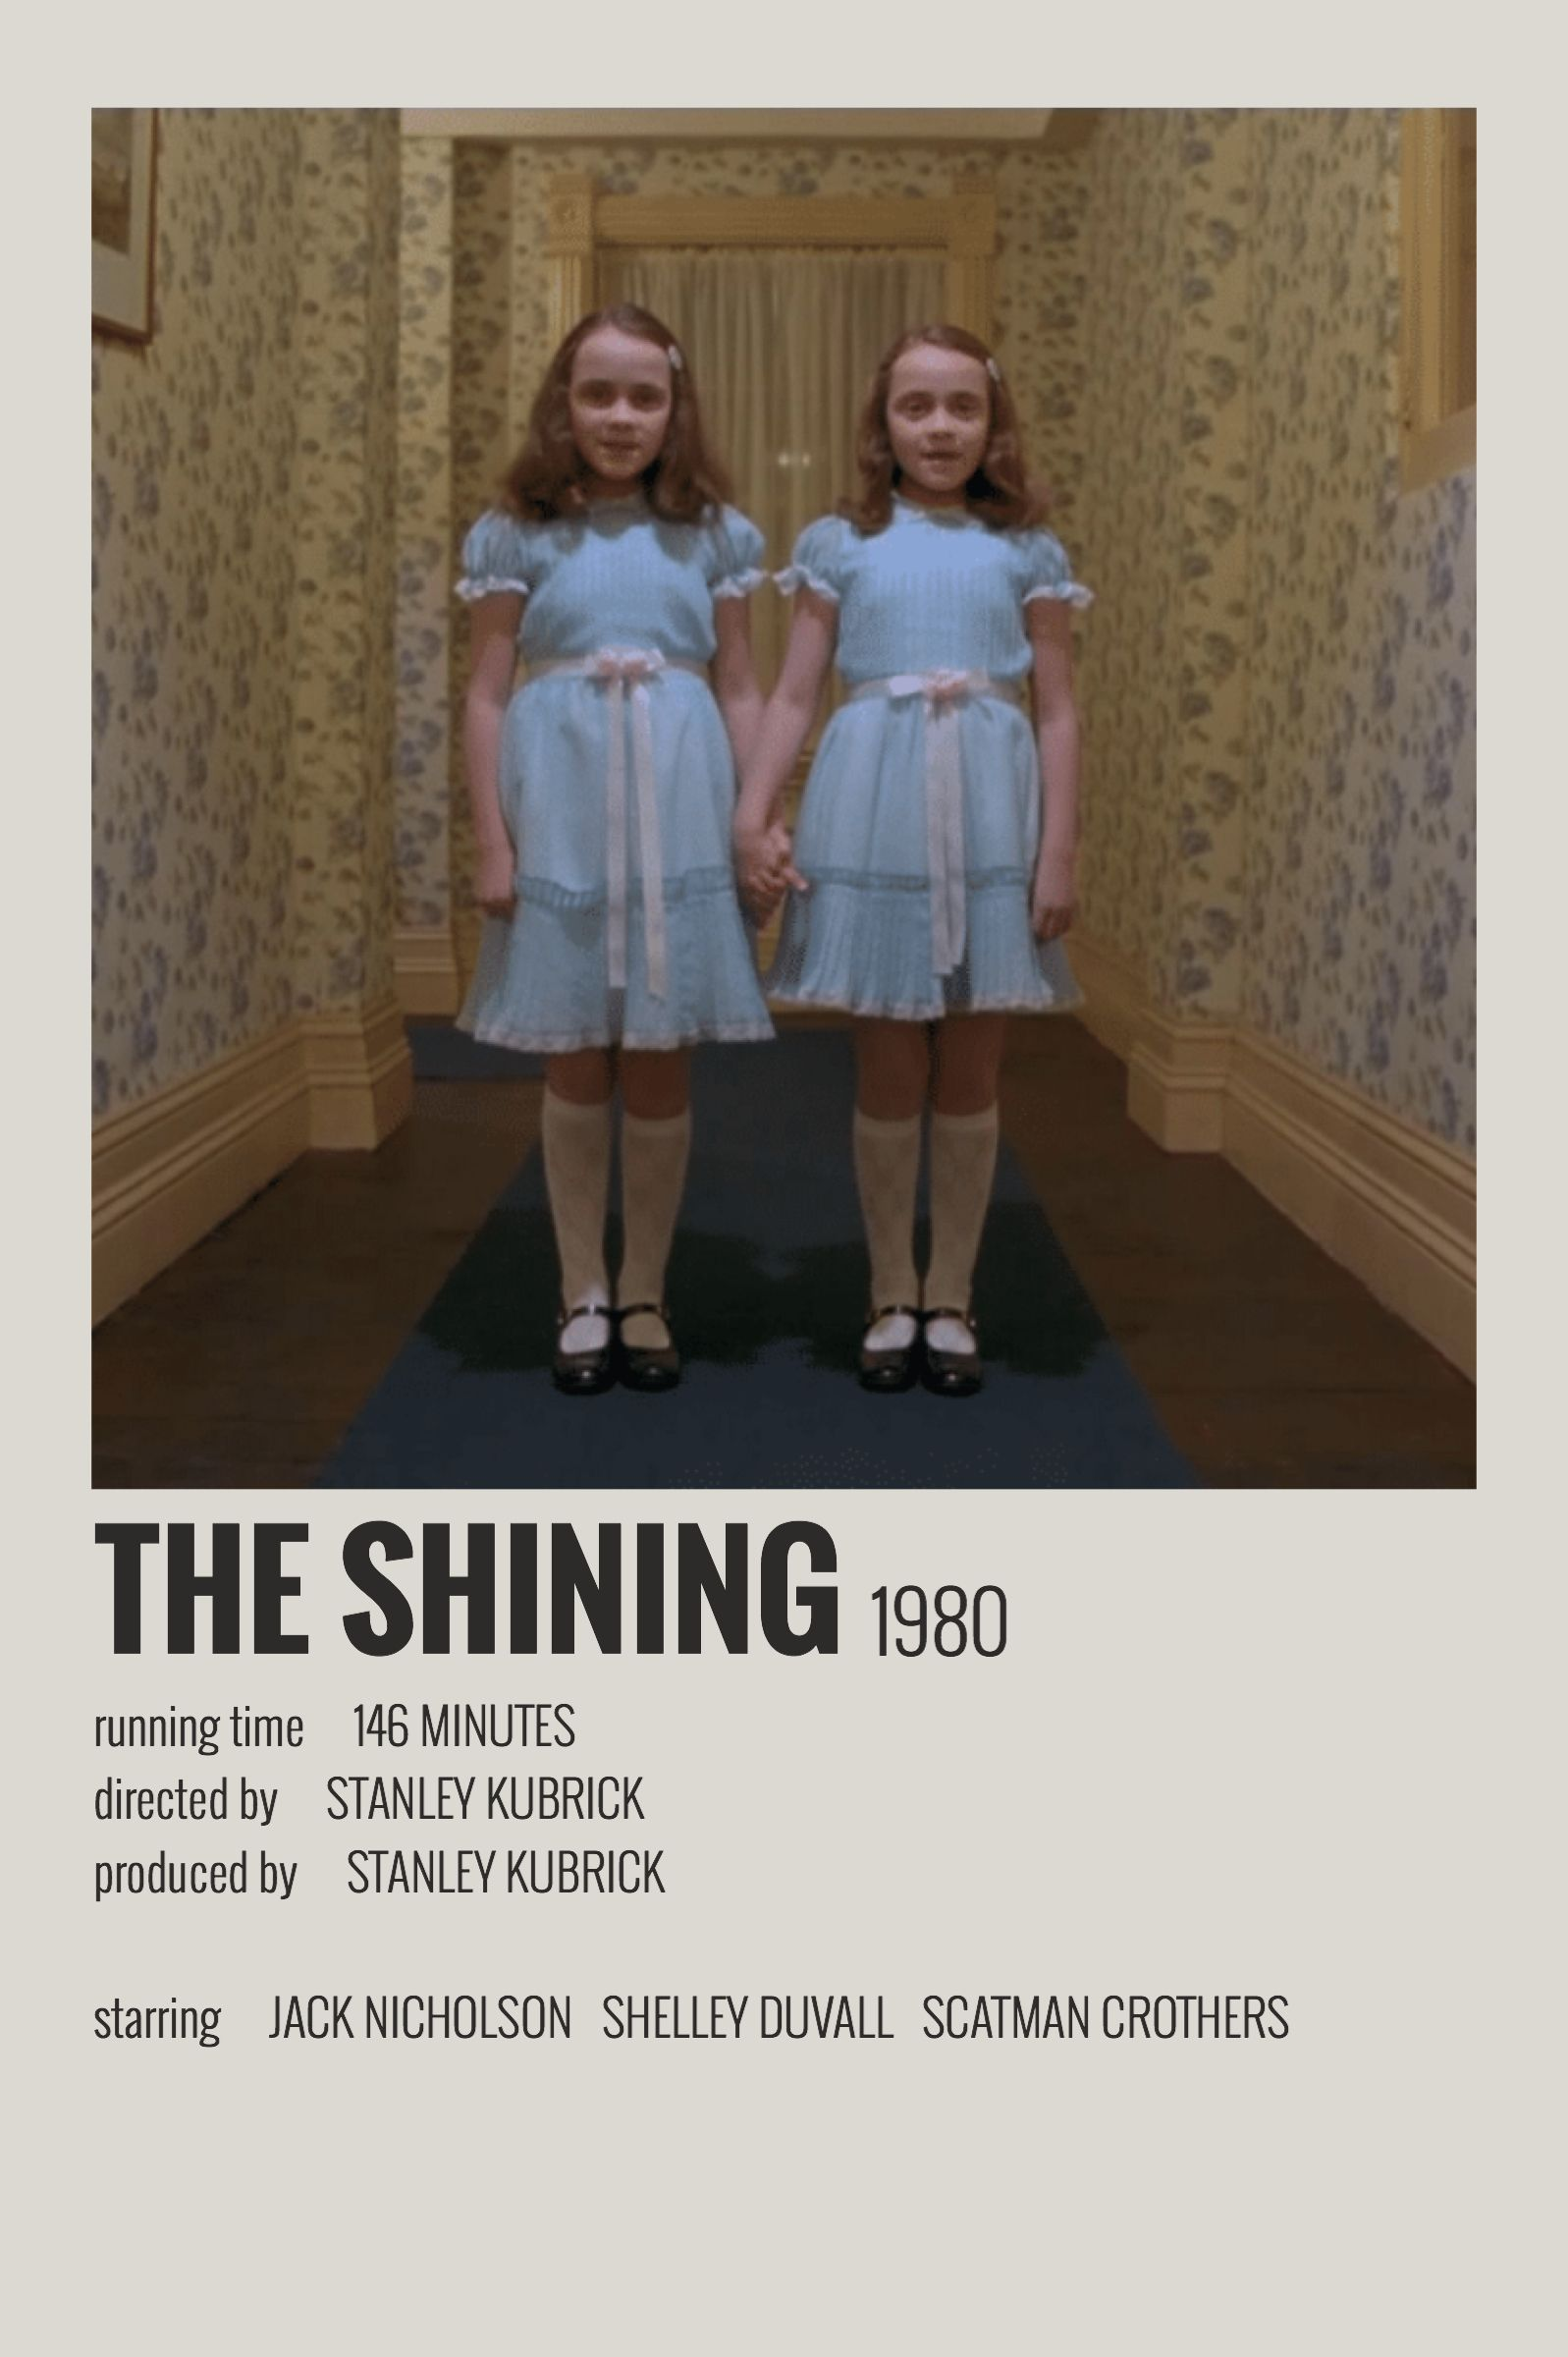 the shining movie posters vintage